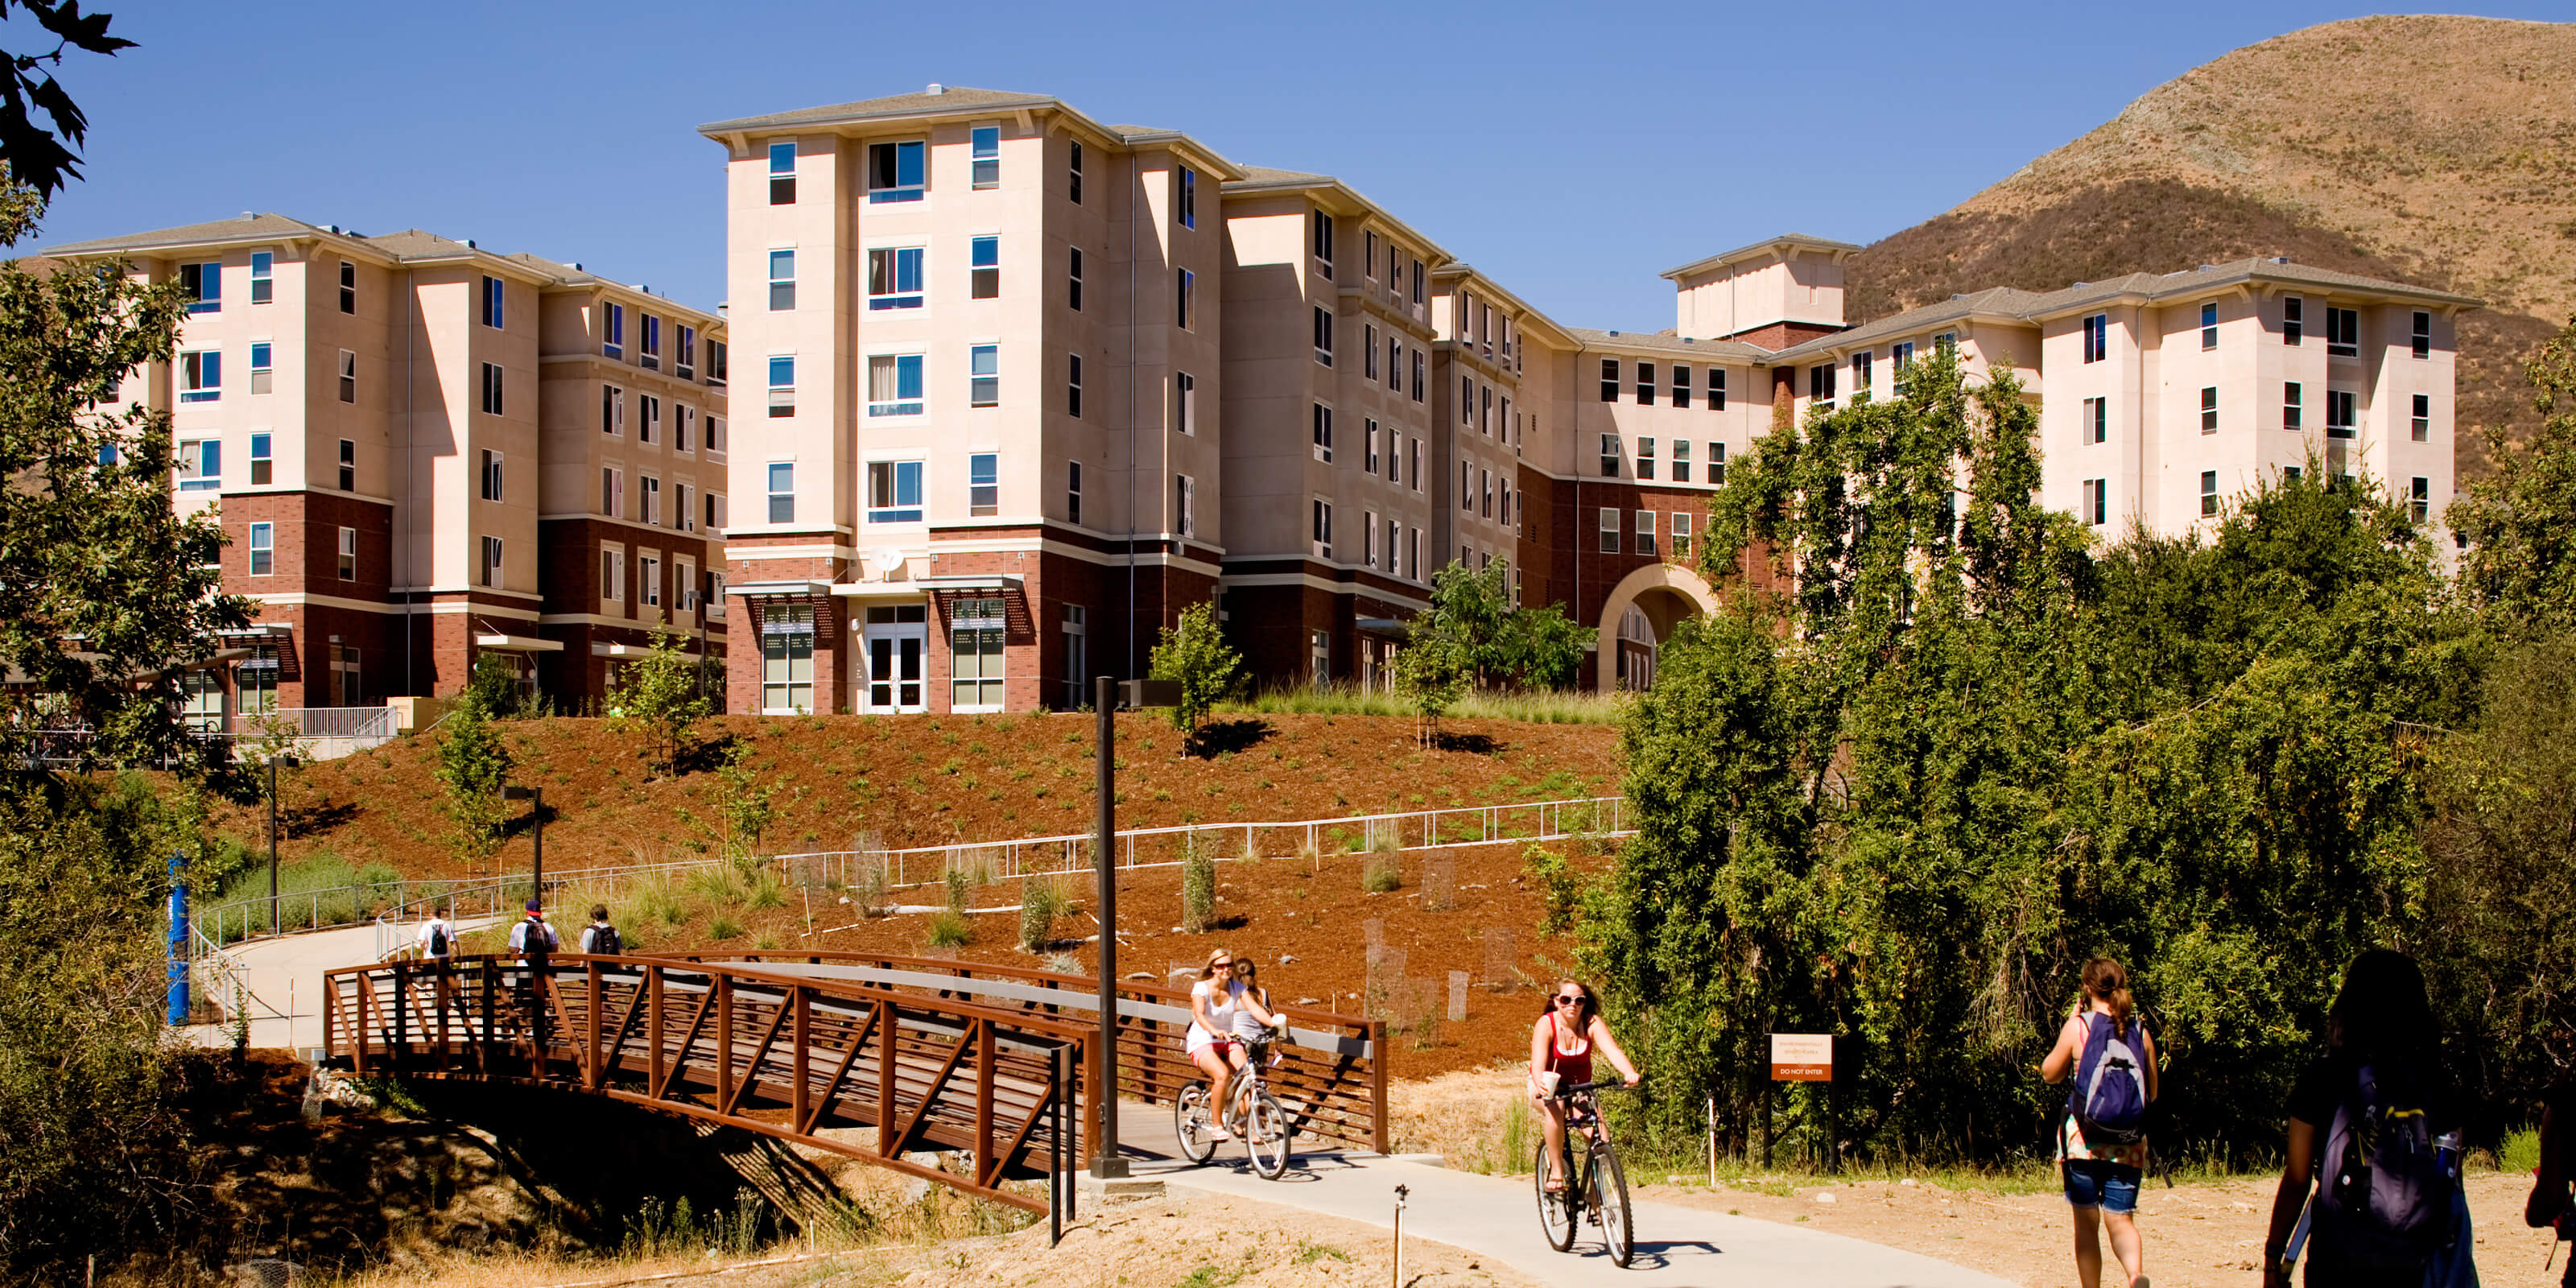 Envisioned As A Town Center For Student Living The New Housing Brings Apartment Style On Campus Poly Canyon Village Is Leed Gold Certified